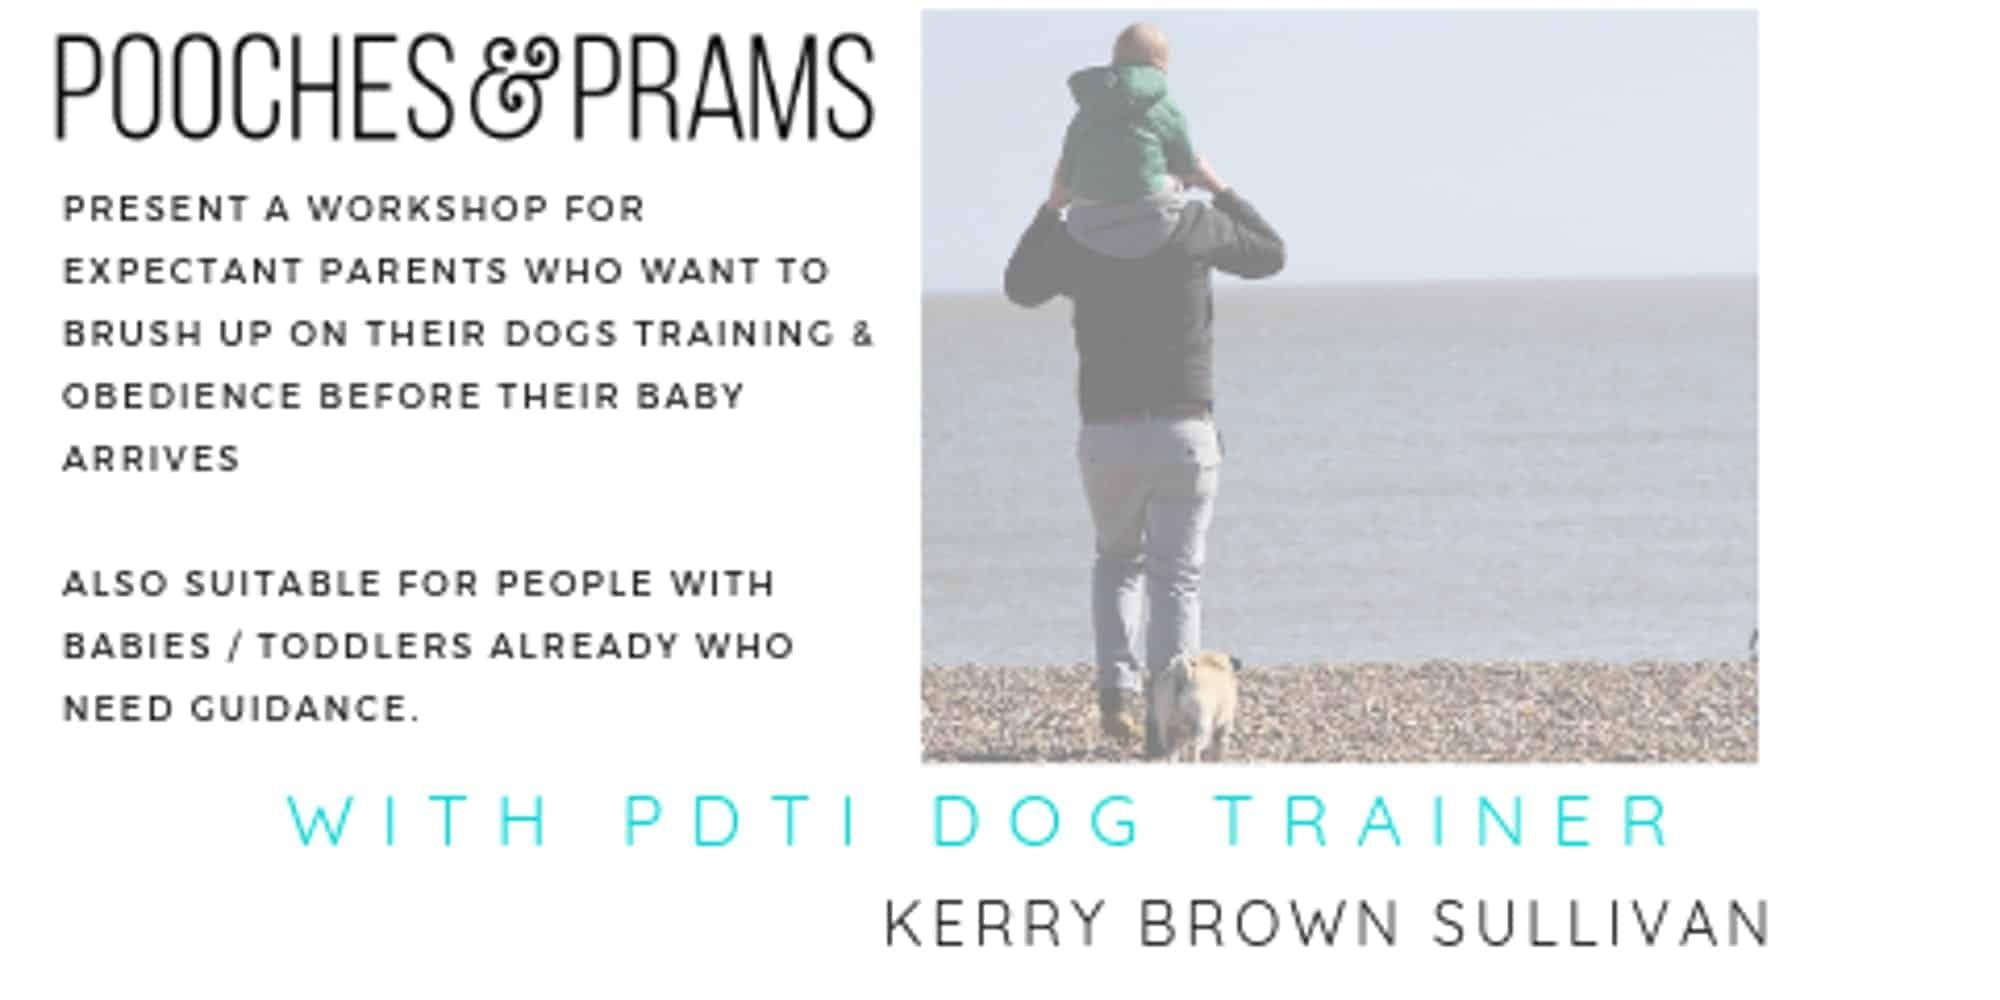 Dog Training Workshop For New Parents - Pooches & Prams